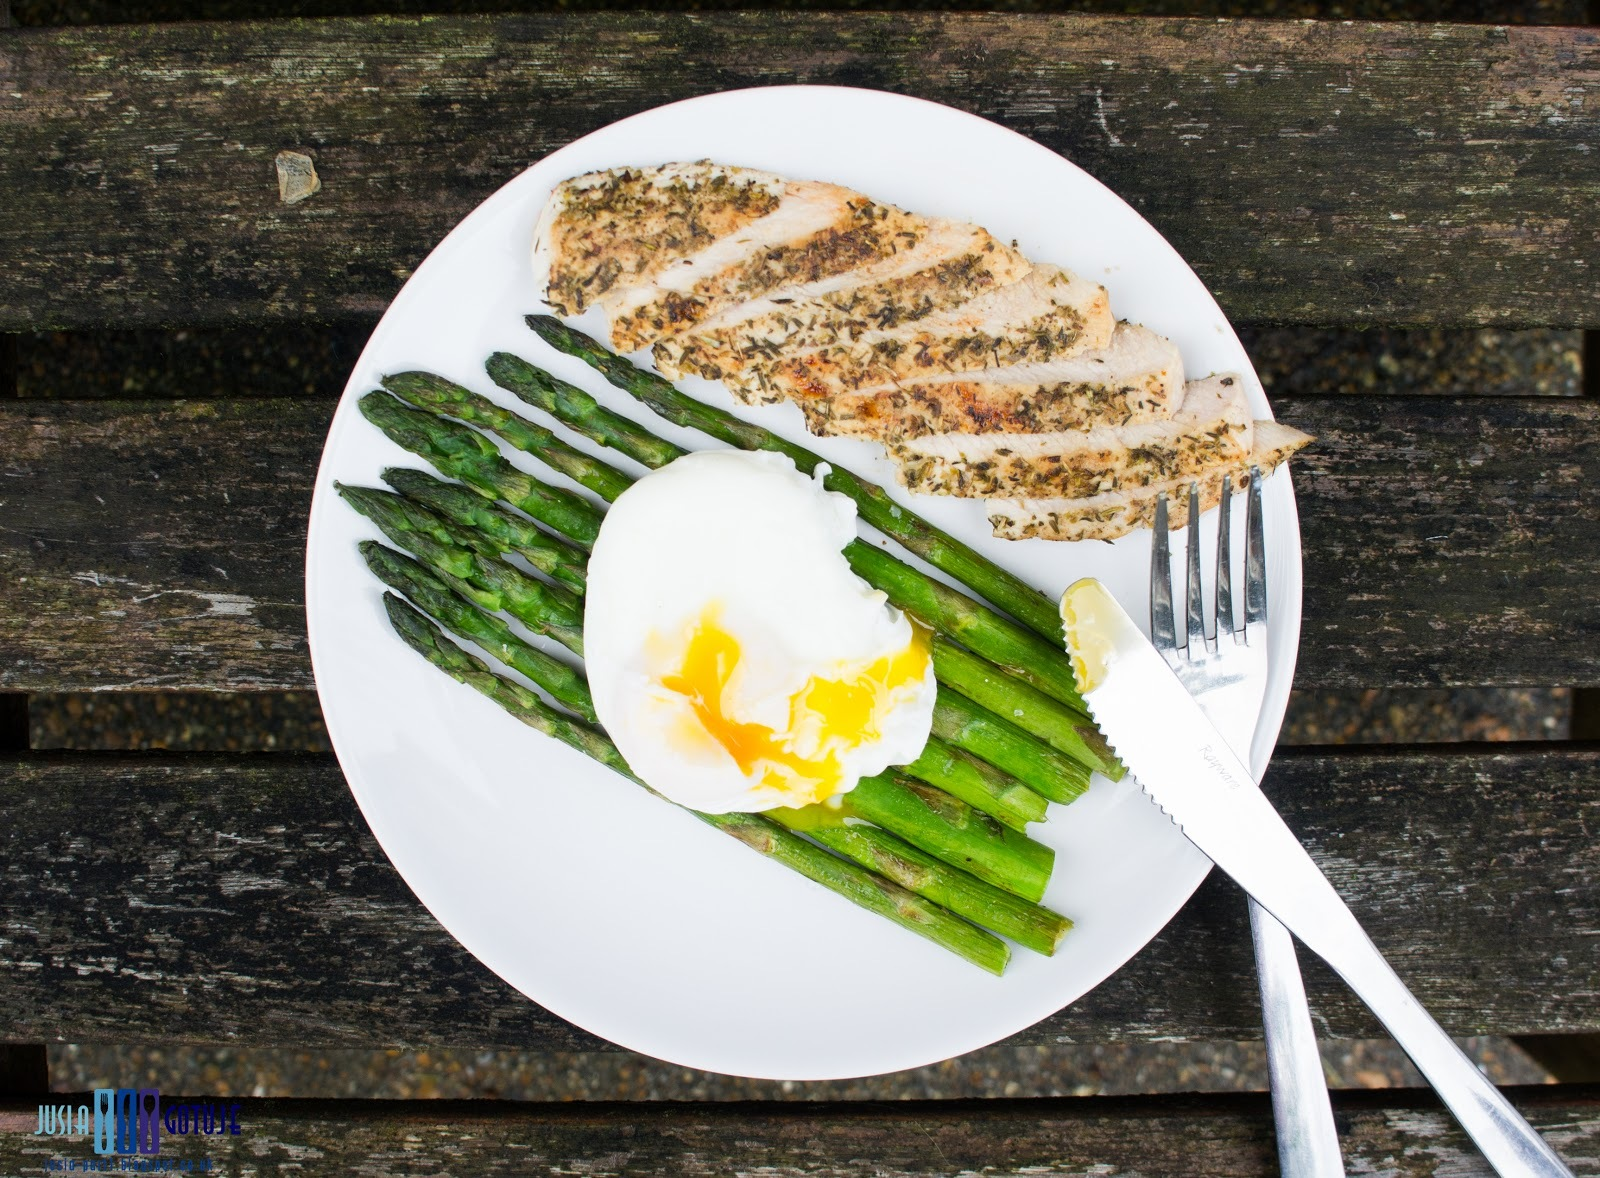 Grillowana pierś z indyka ze szparagami i jajkiem w koszulce. / Grilled turkey breast with asparagus and poached egg.